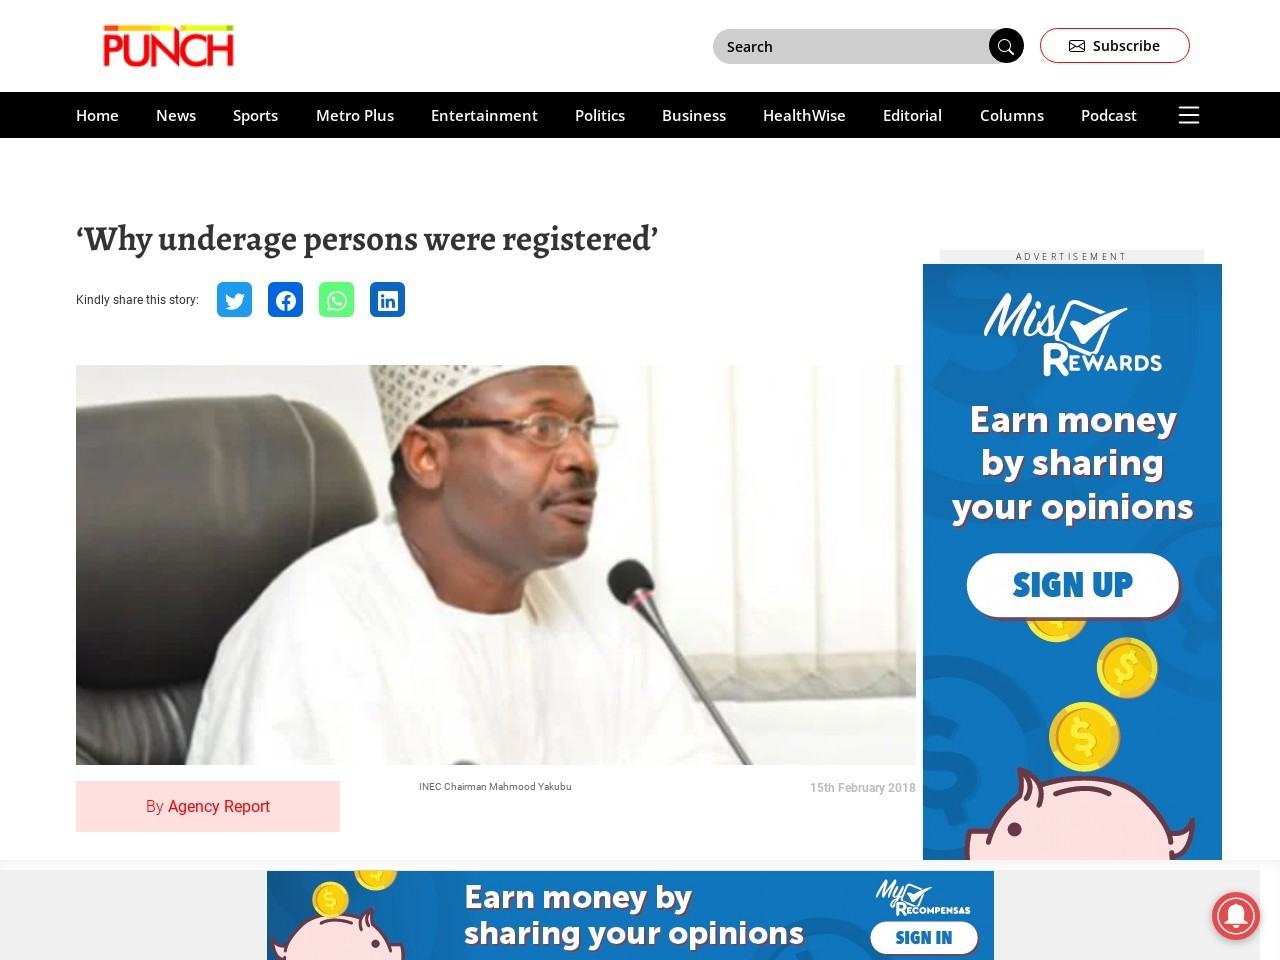 'Why underage persons were registered'